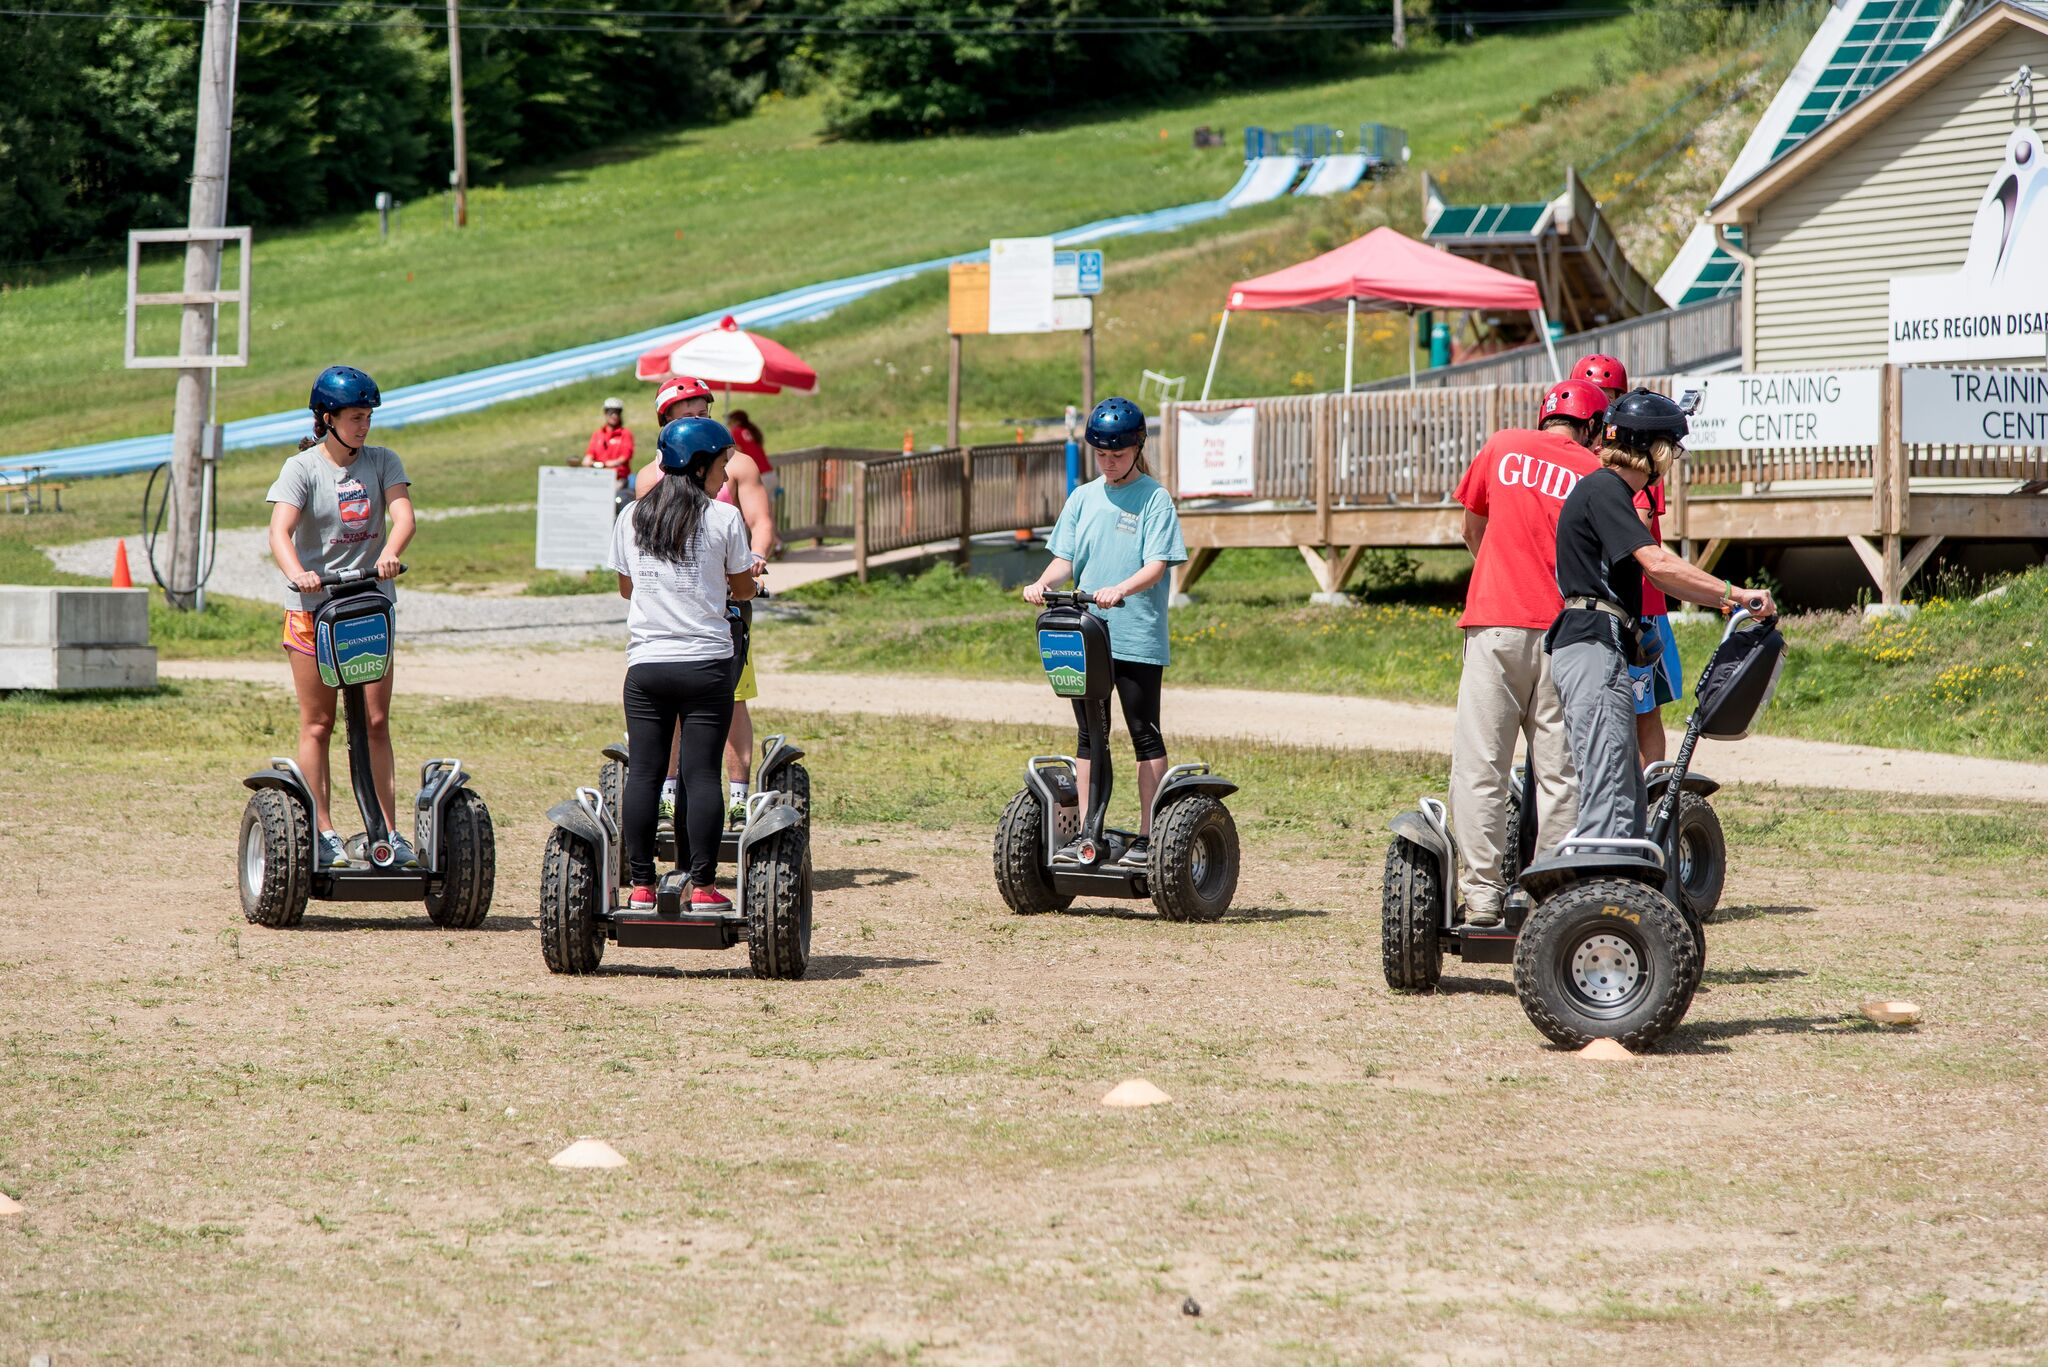 Off-Road Segway Tours - Gunstock Mountain Adventure Park has the best Authorized Off-Road Segway Tour in the Northeast, in fact they were awarded the CEO's Choice Award for best quality tour. Explore the trails of Gunstock in an entirely new way – on board an Off-Road Segway X2.